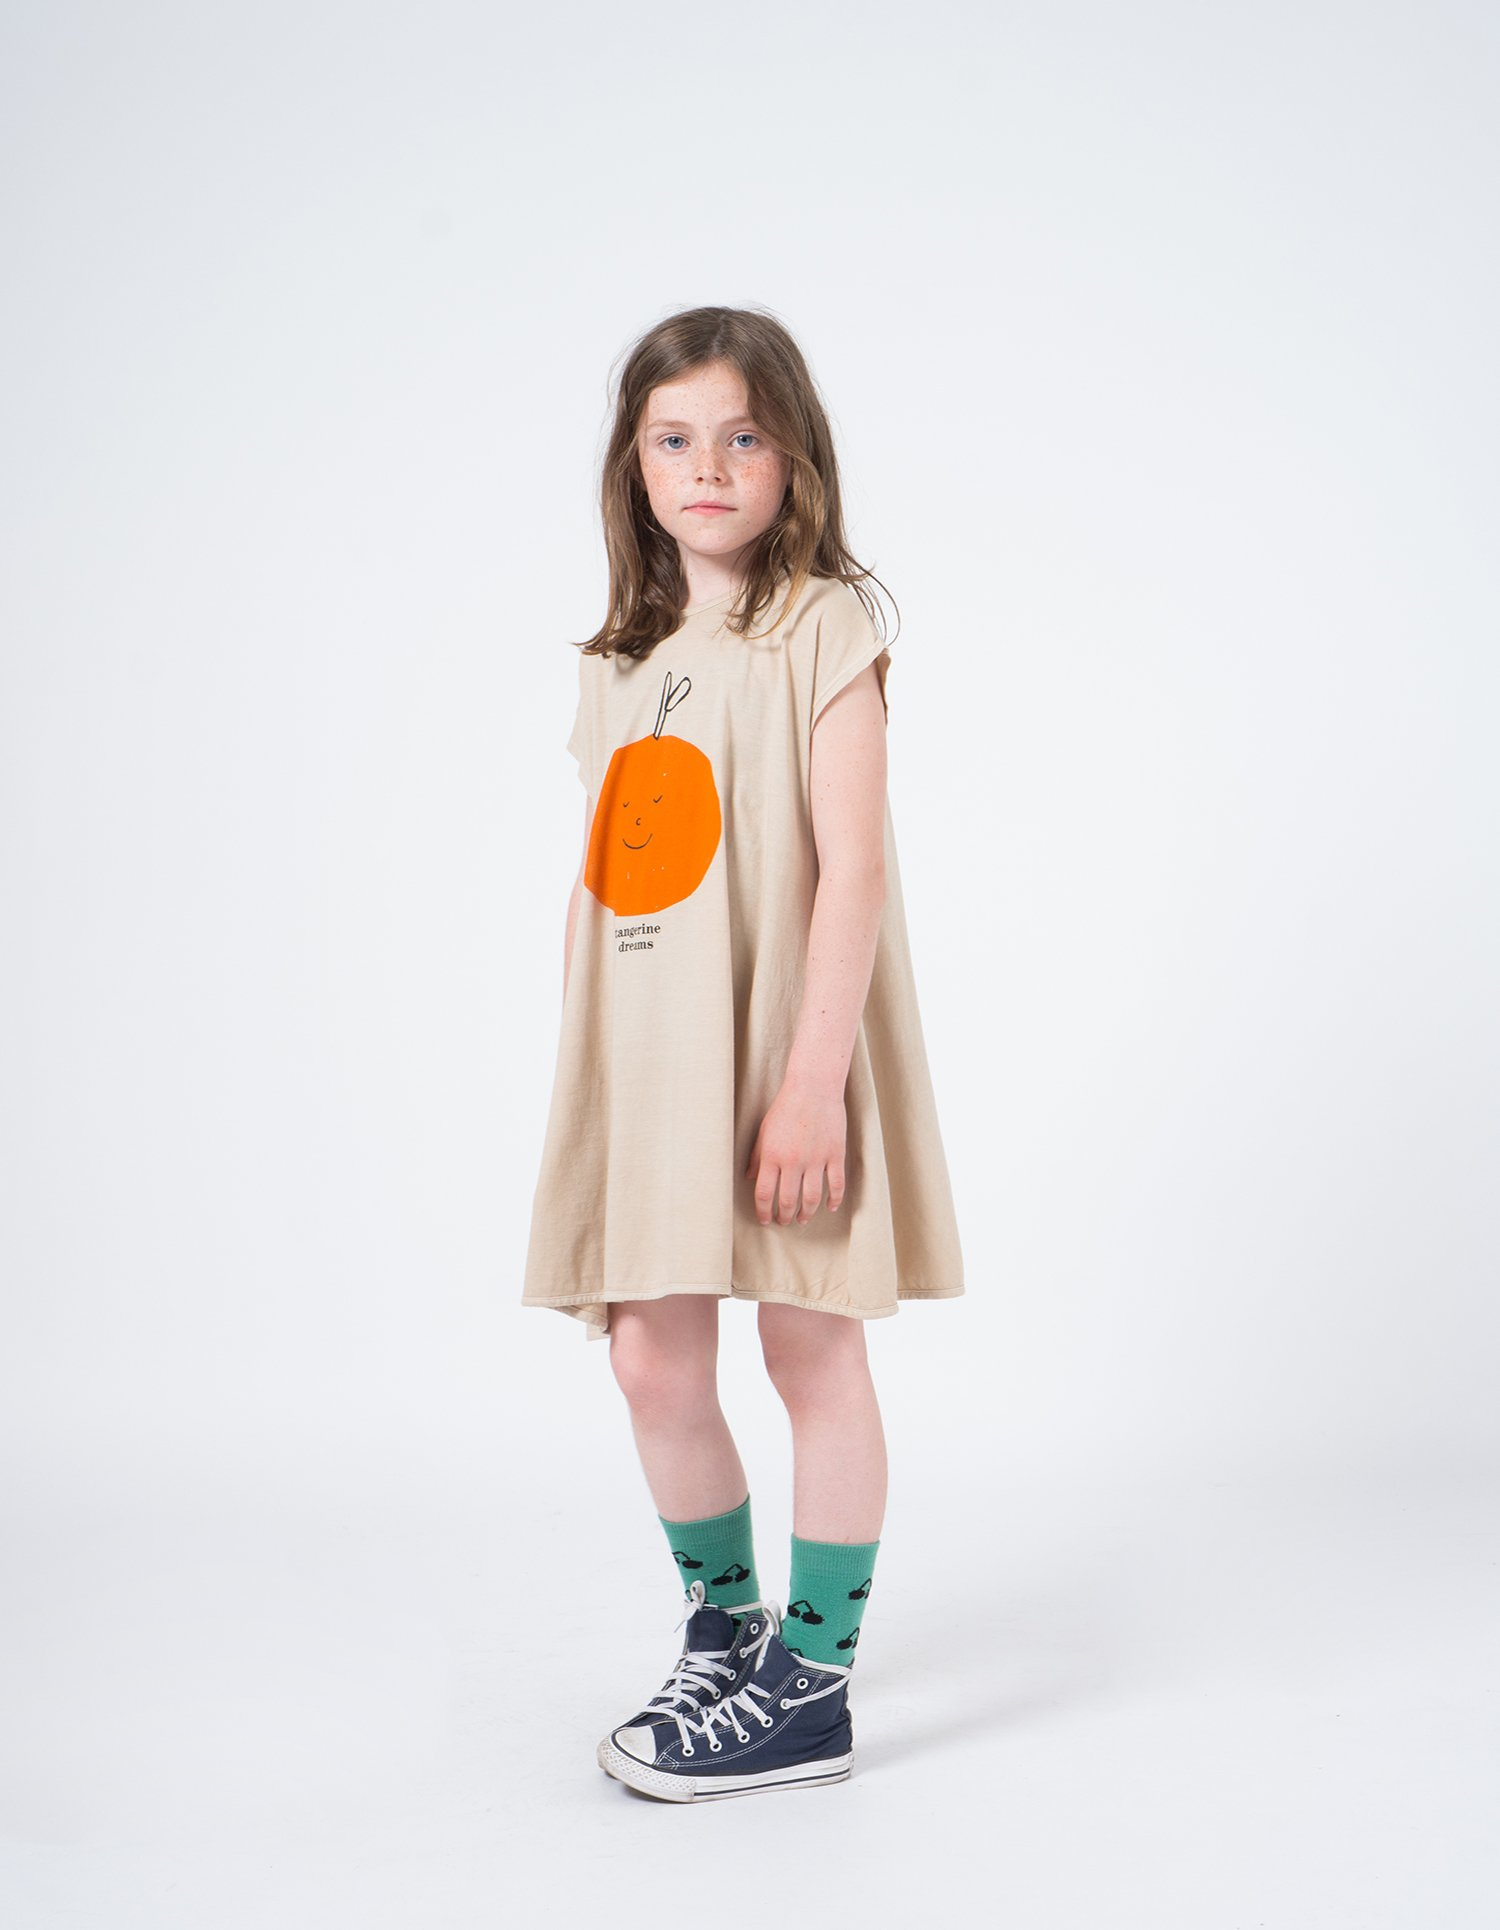 Kid Tangerine Dreams Evase Dress Look